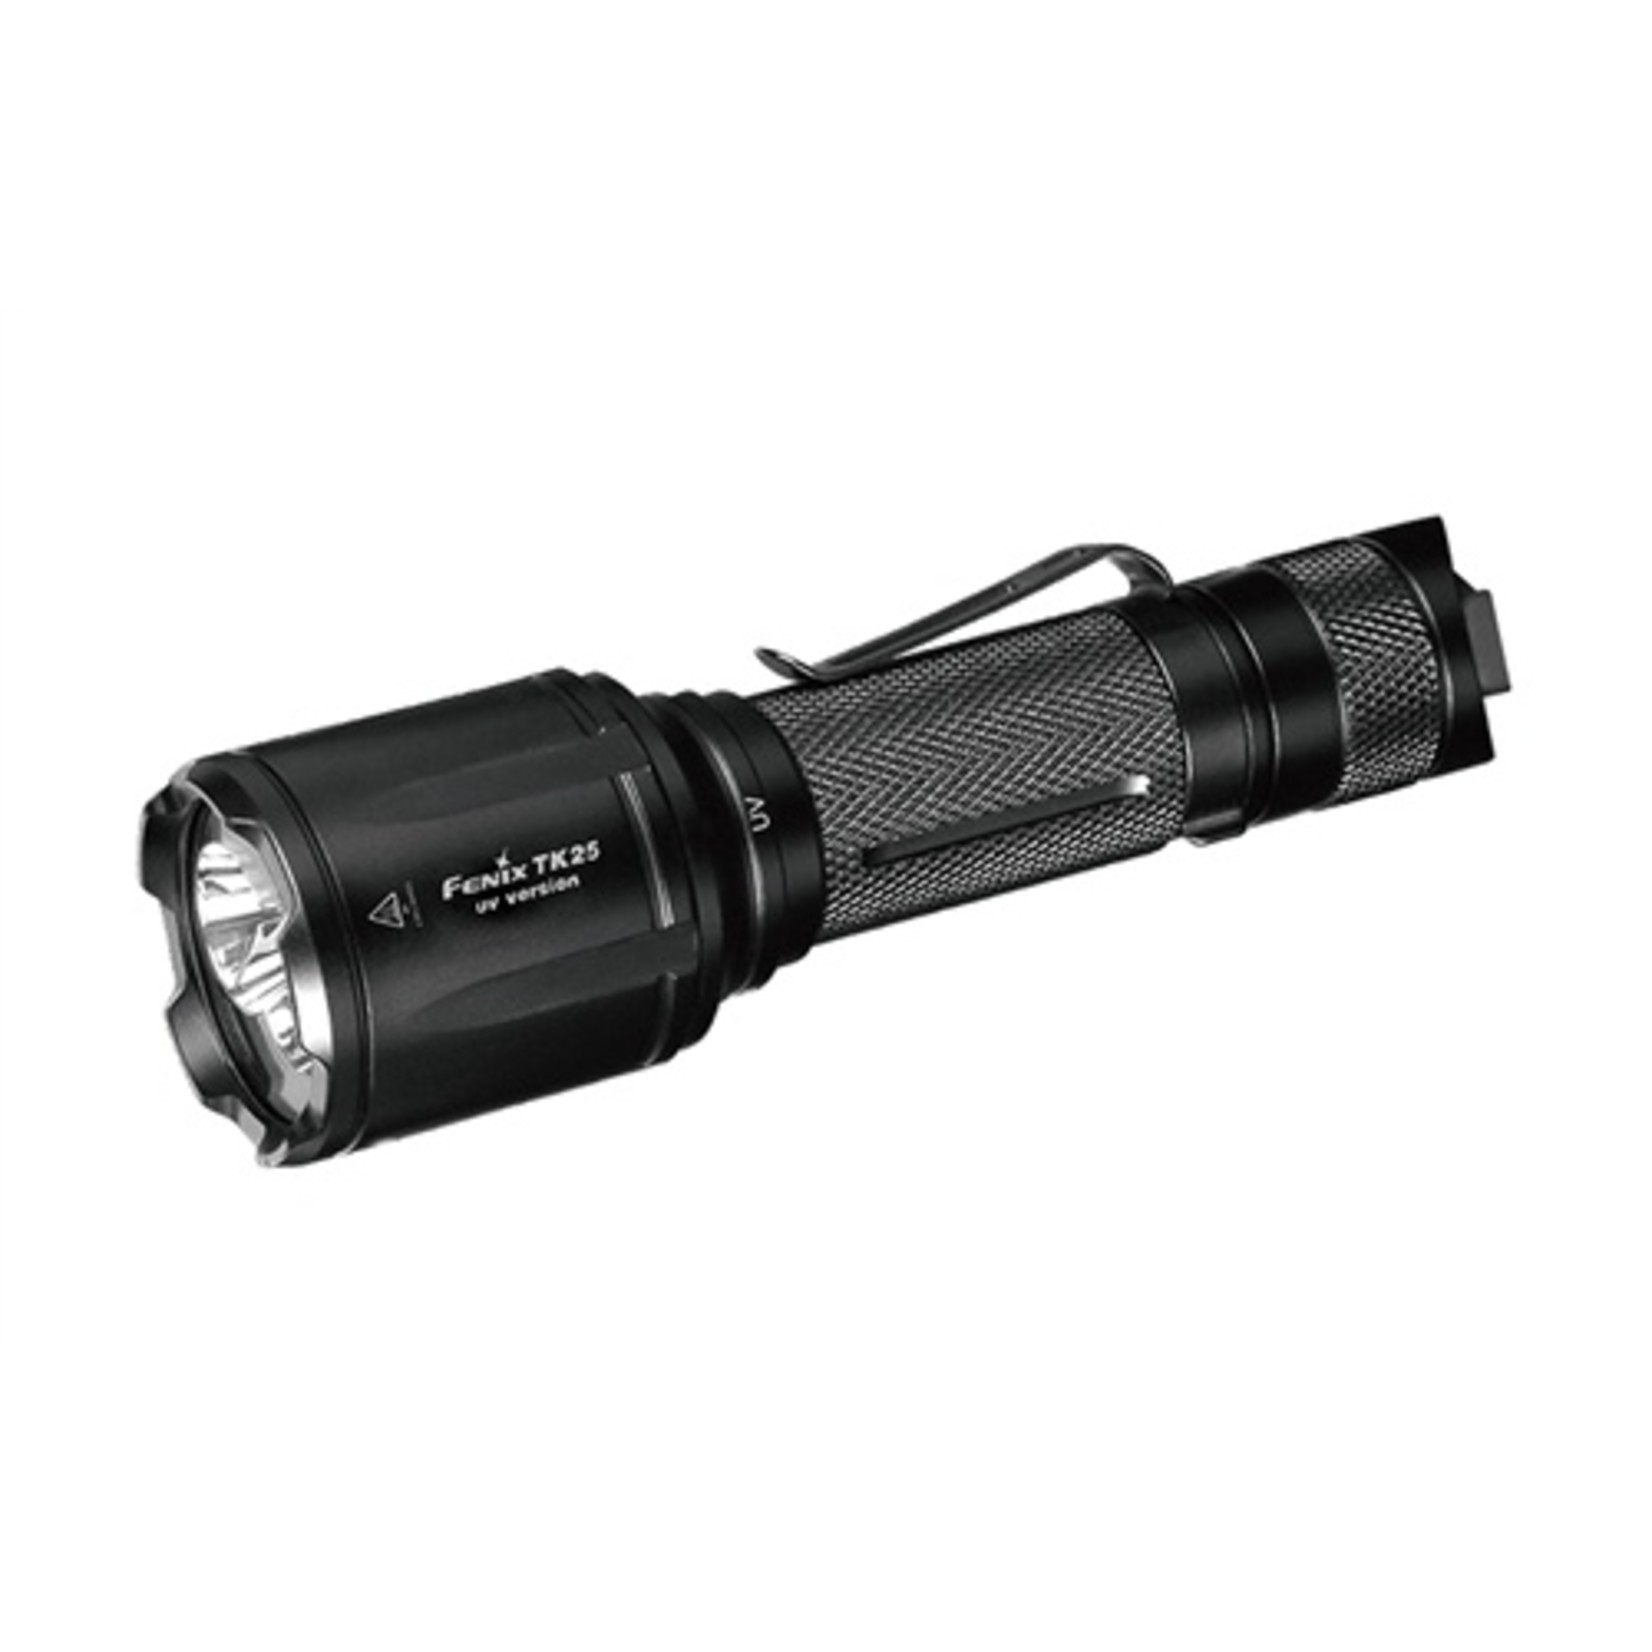 FENIX LIGHT TK25UV